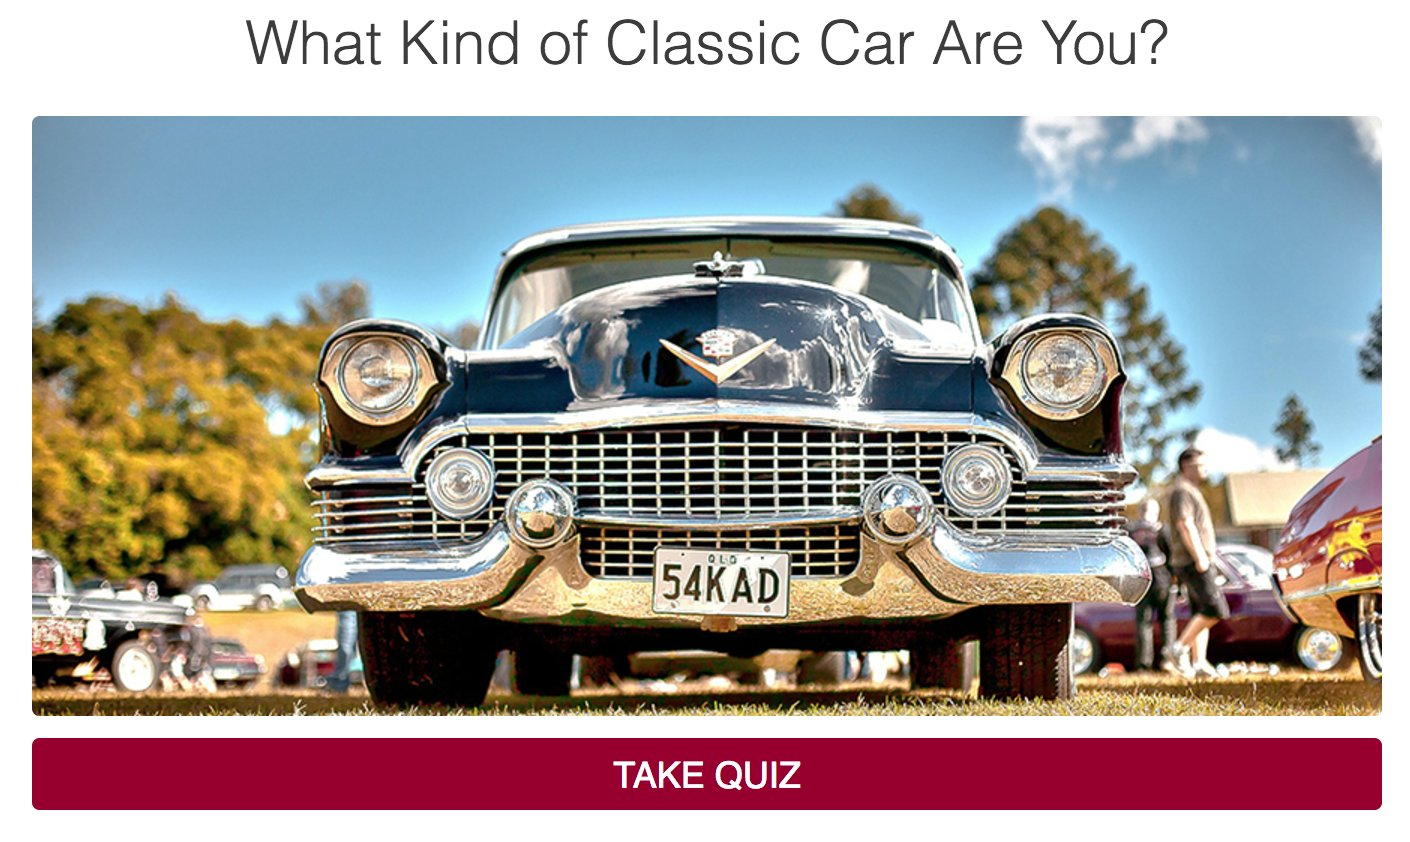 Q2. Literally everyone, even classic car lovers. One caveat, not for B2B typically #BizapaloozaChat https://t.co/YpRUFvGYsD